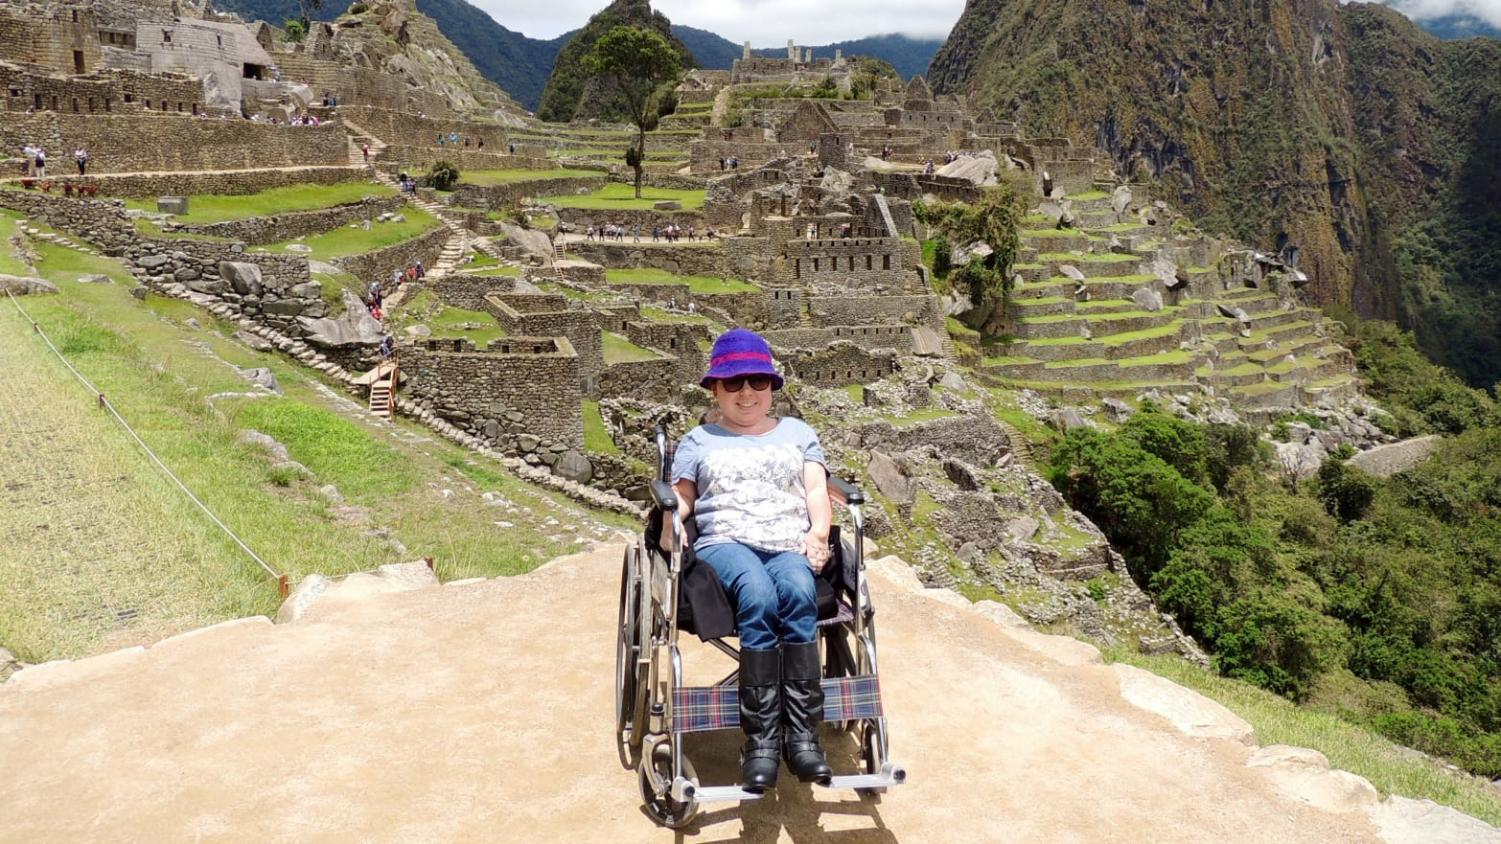 CIndy Otis, a wheelchair user, scaled the Incan ruins of Machu Picchu.